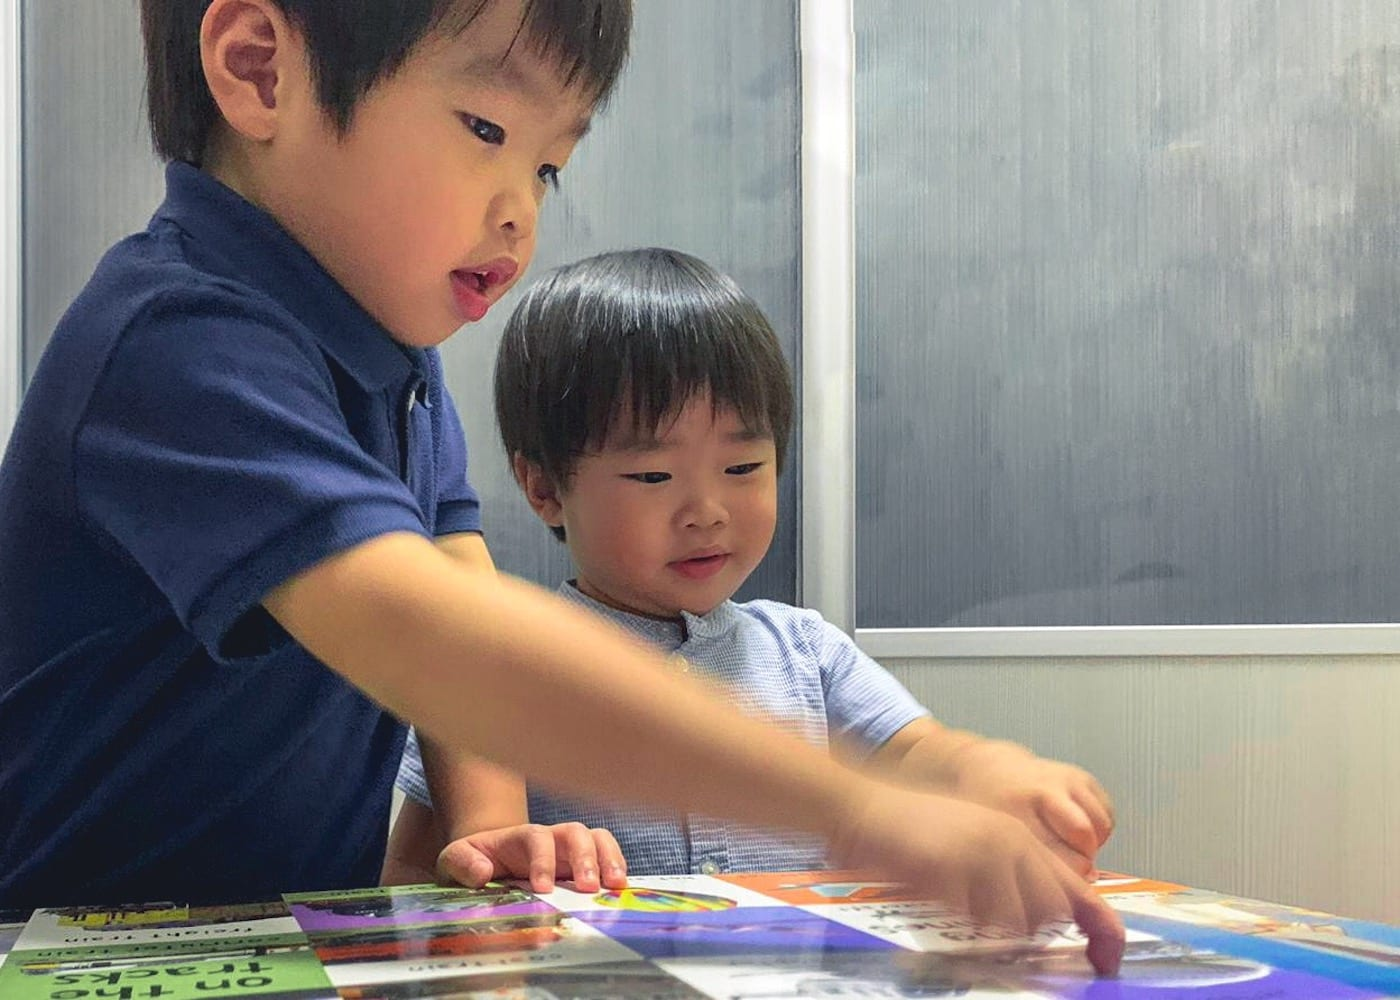 Enrichment classes for kids at De Kinder Club: coding, yoga and mindfulness, science, sports, chess and more!